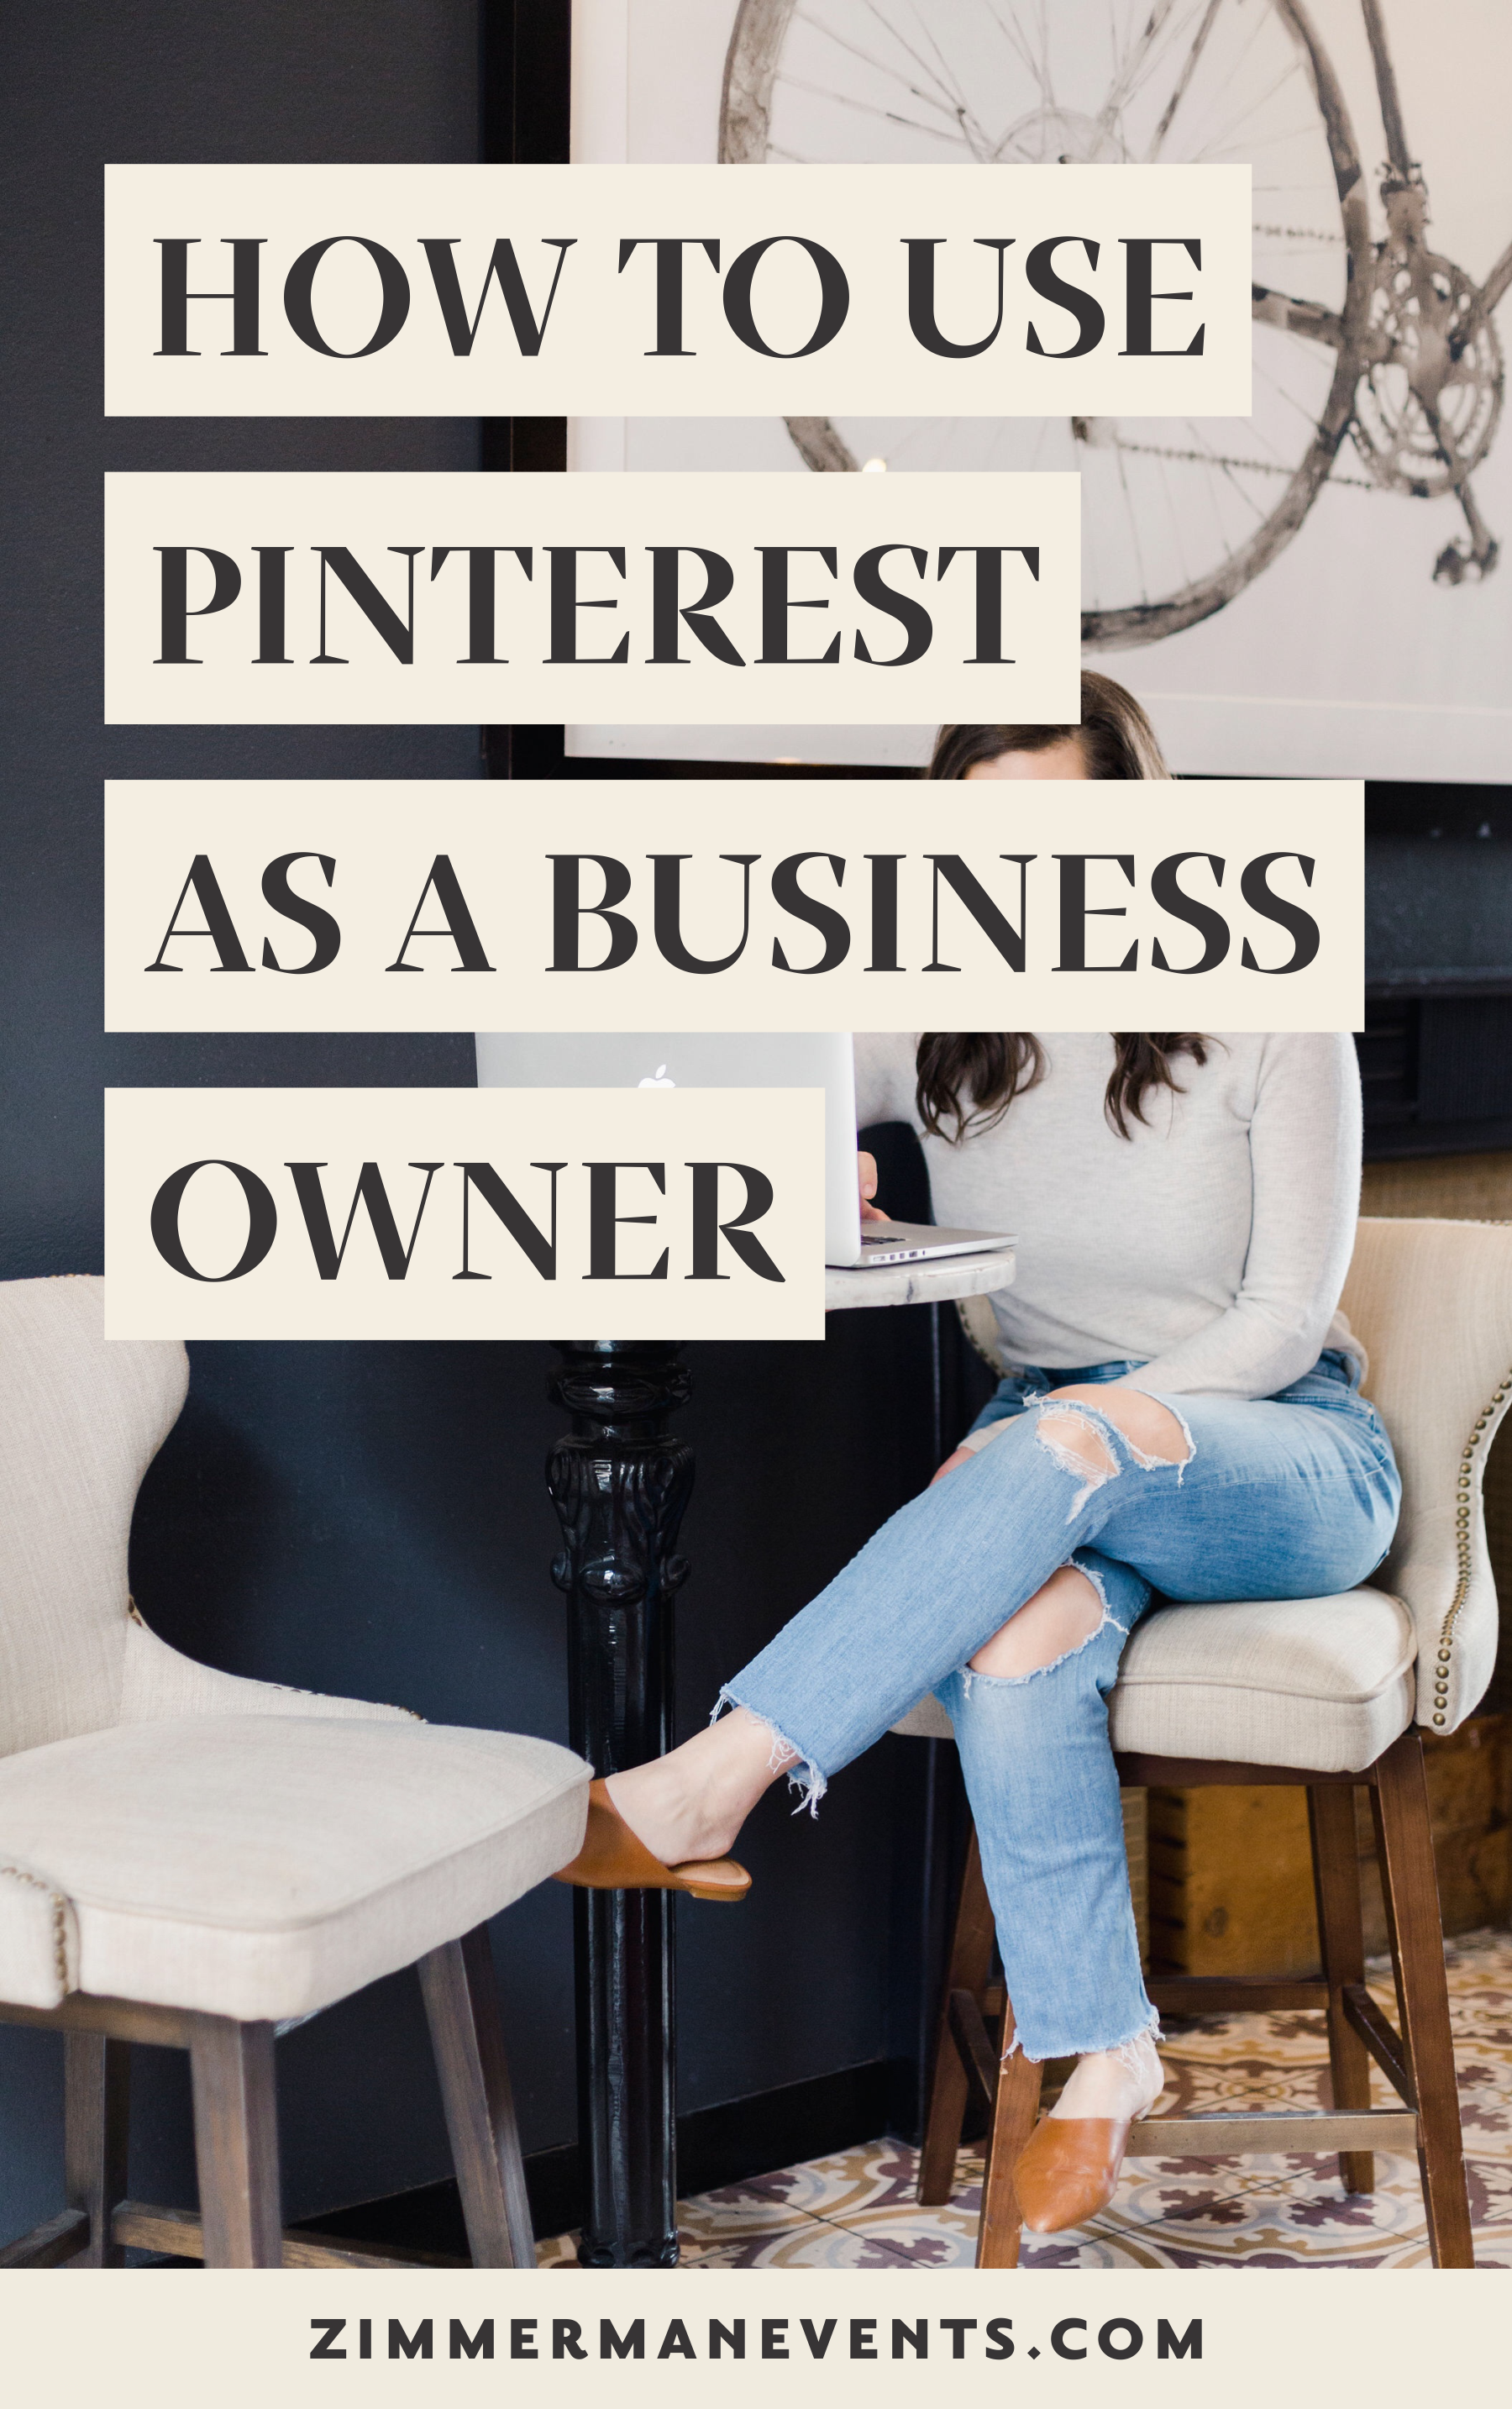 How To Use Pinterest As A Business Owner In 2021 Small Business Social Media Marketing Strategy Business Small Business Organization